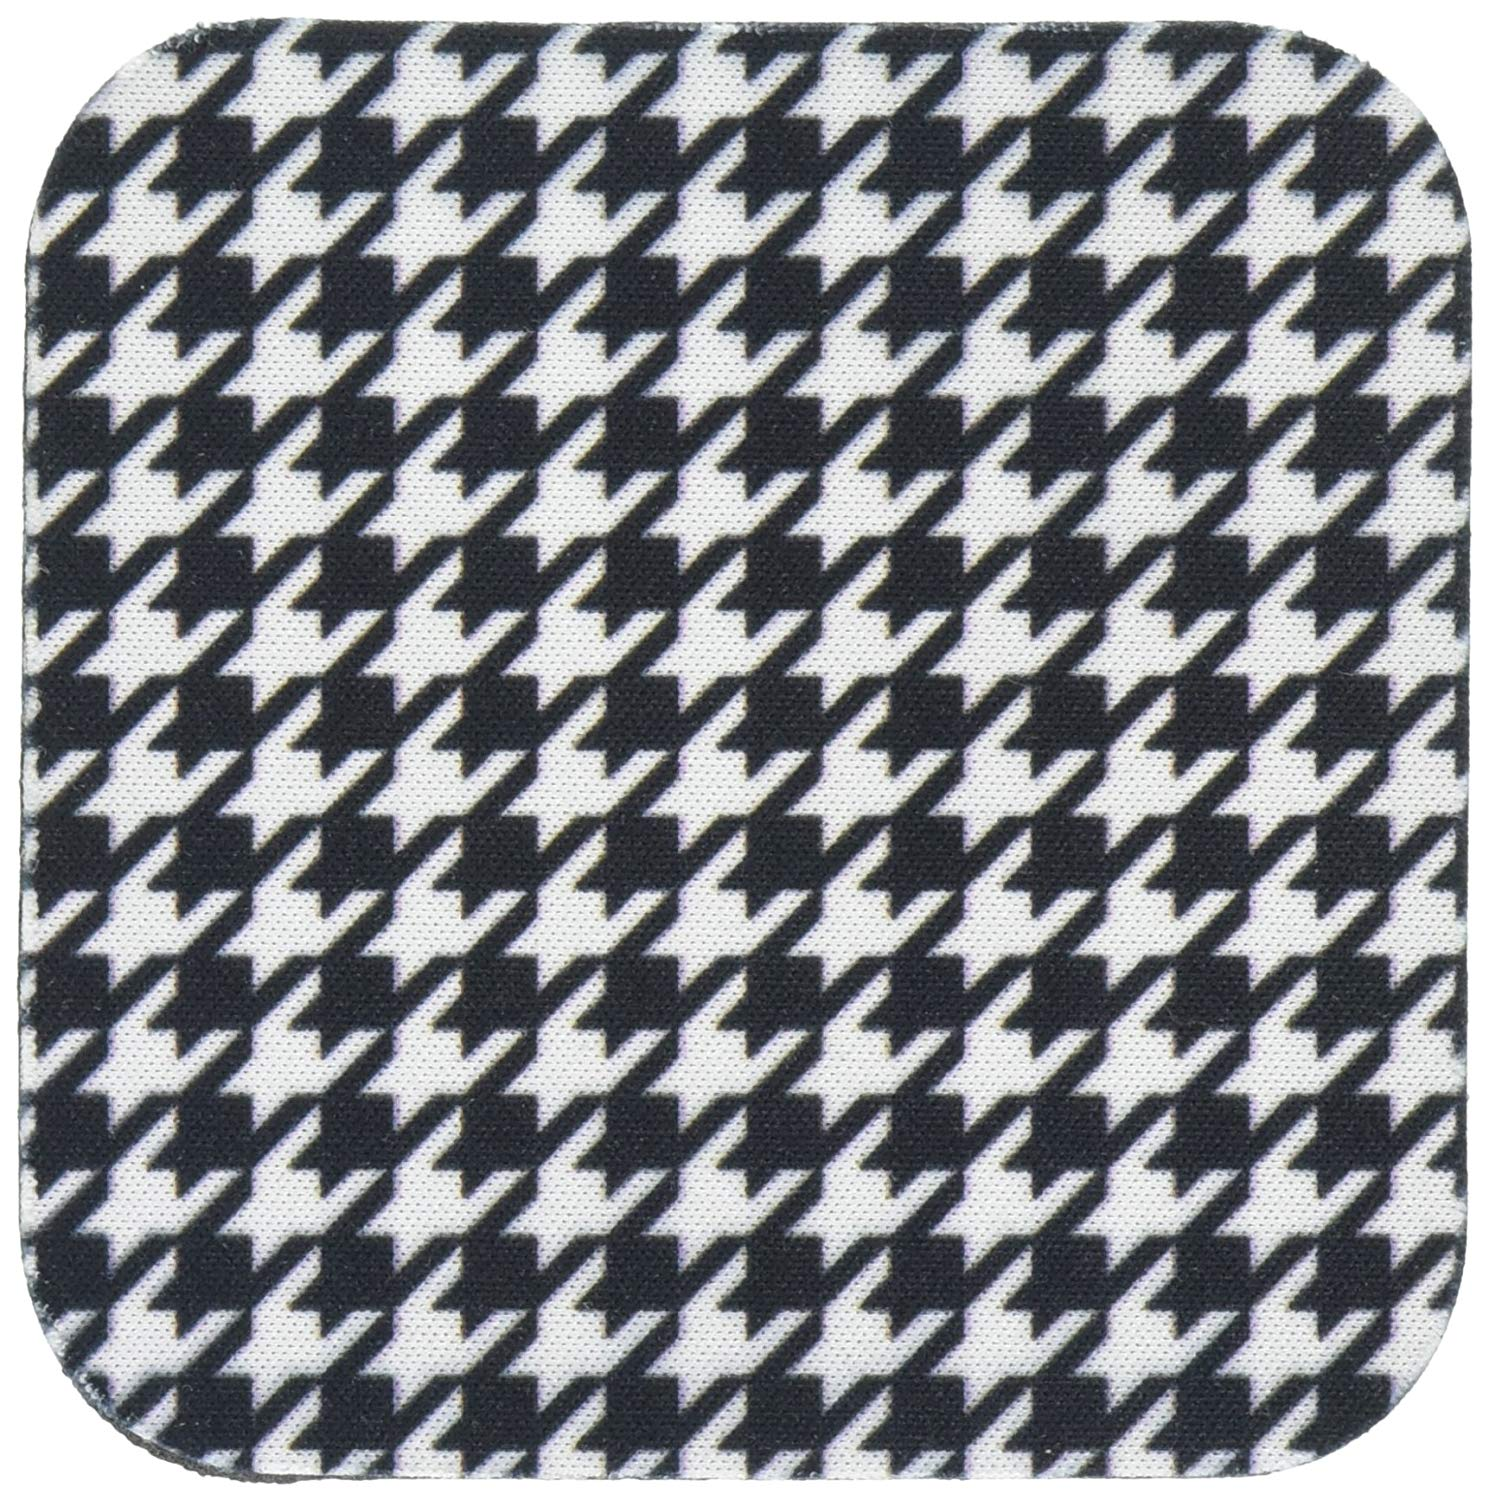 3dRose CST_113003_1 Black and White Houndstooth Pattern-Large-Preppy Trendy Stylish Classy Classic Chic Fashionable-Soft Coasters, Set of 4